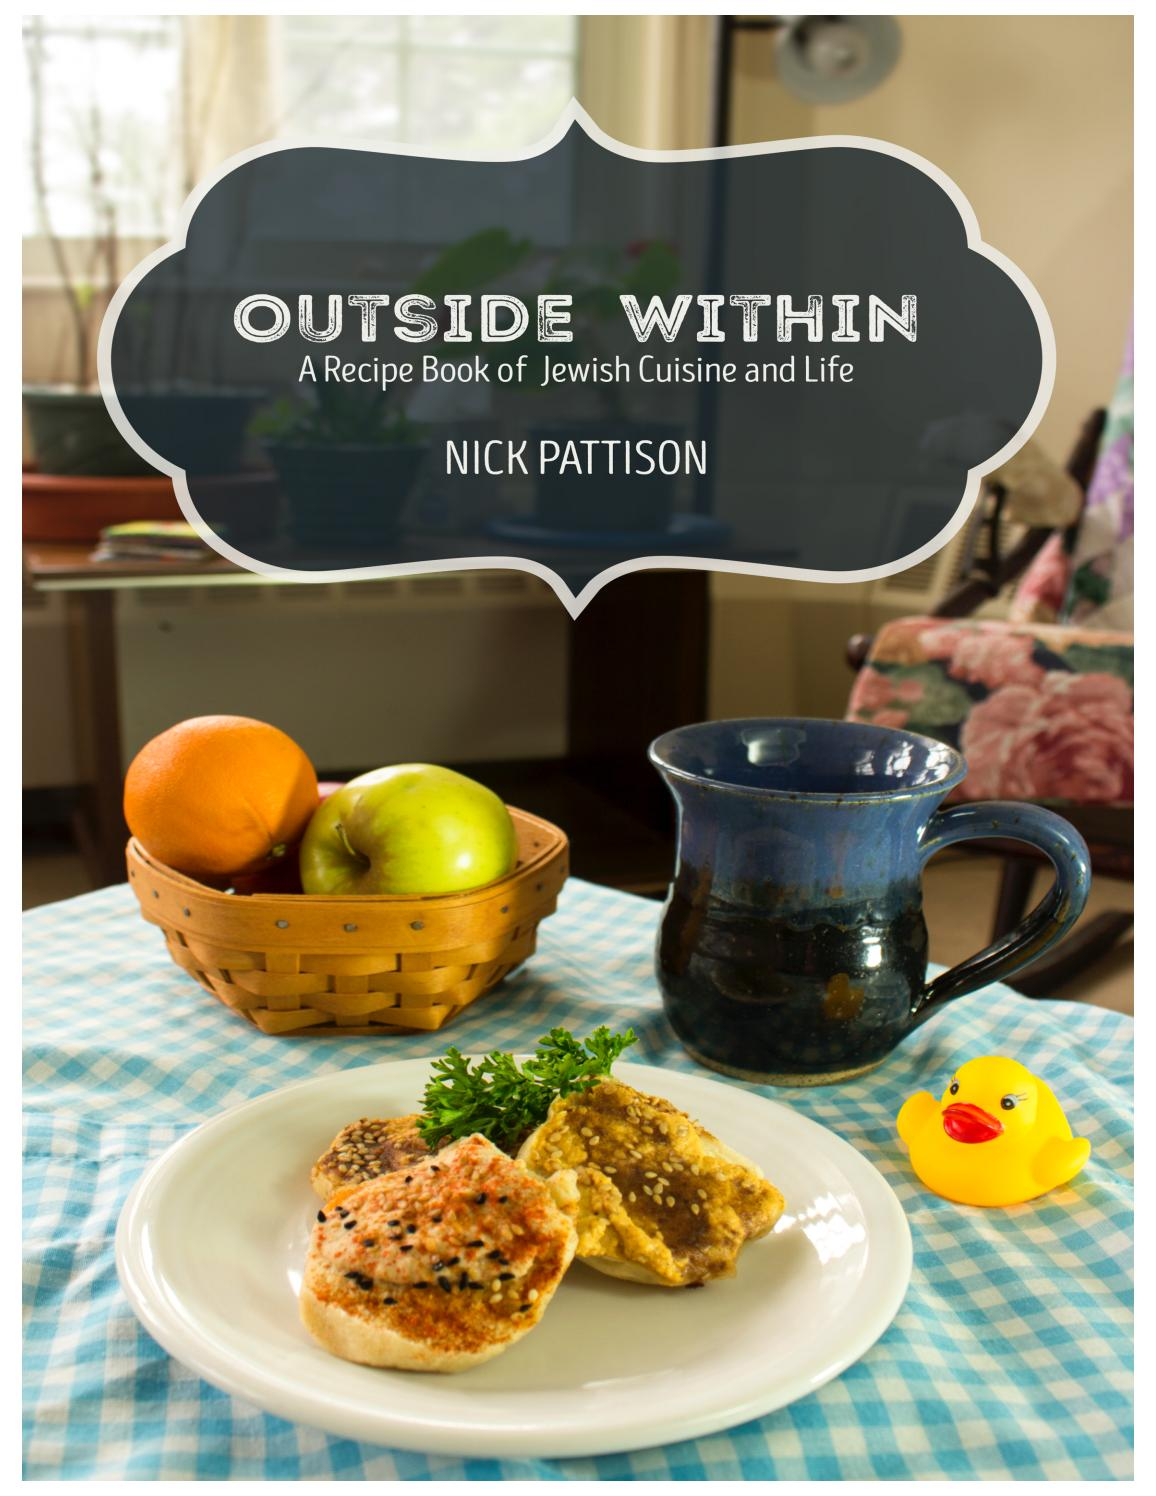 Outside Within A Recipe Book Of Jewish Cuisine And Life By Nicholas Ghirardelli Wedges Blessing Khaky 39 Pattison Issuu